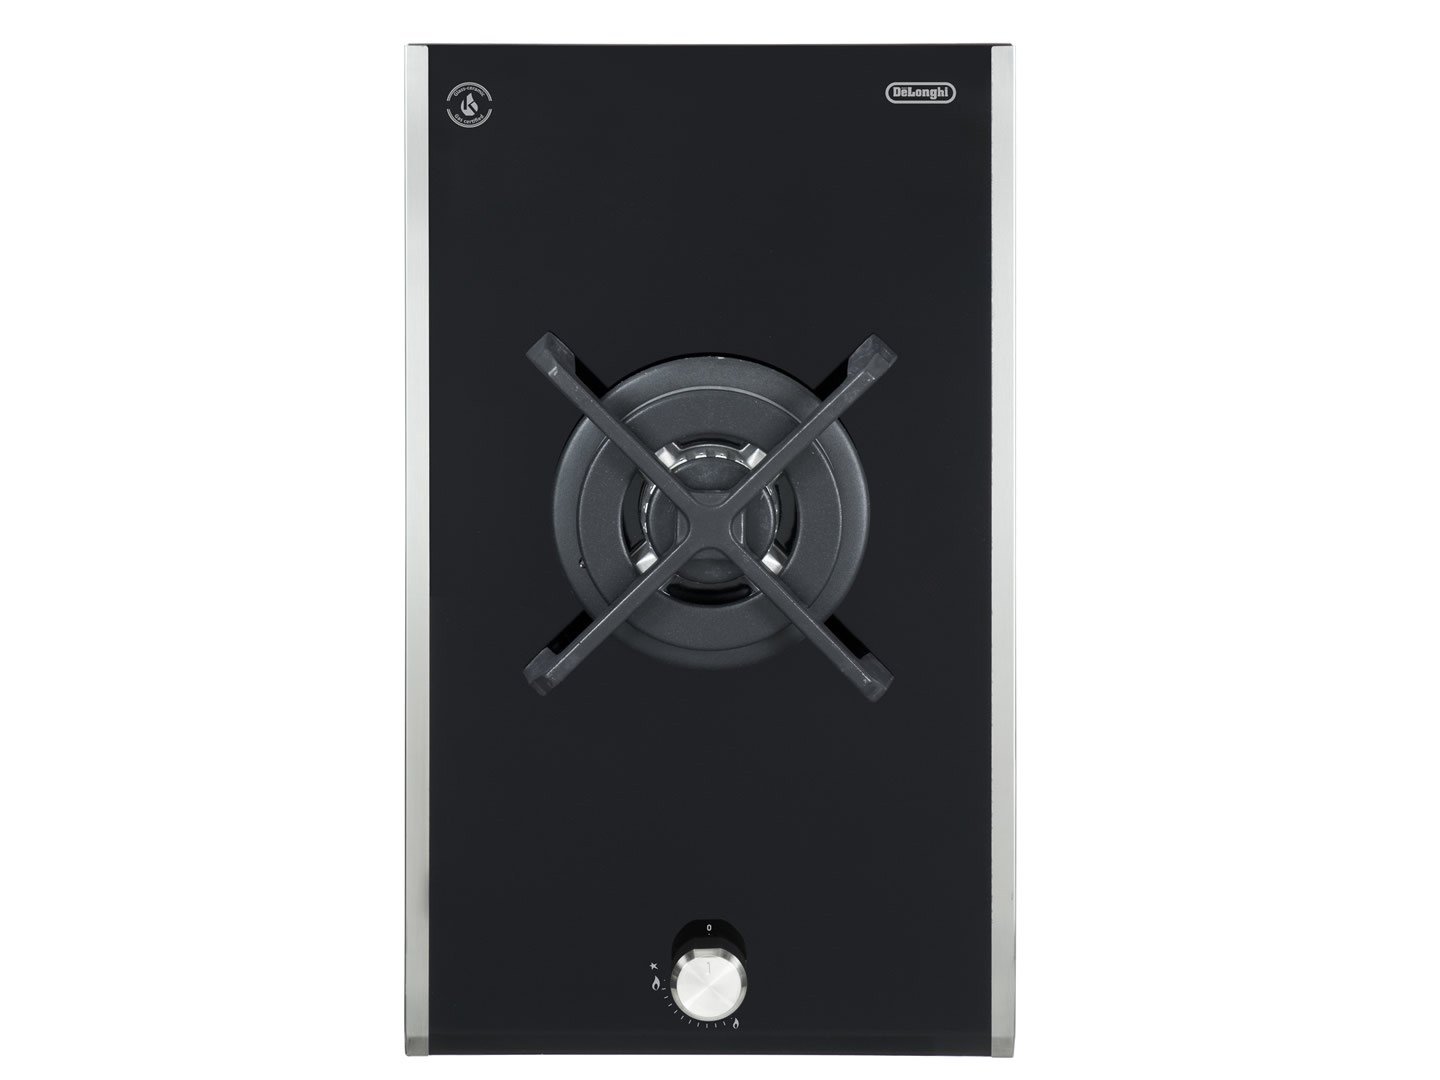 DeLonghi Delonghi DE30WGBX1 kitchen Cooktop